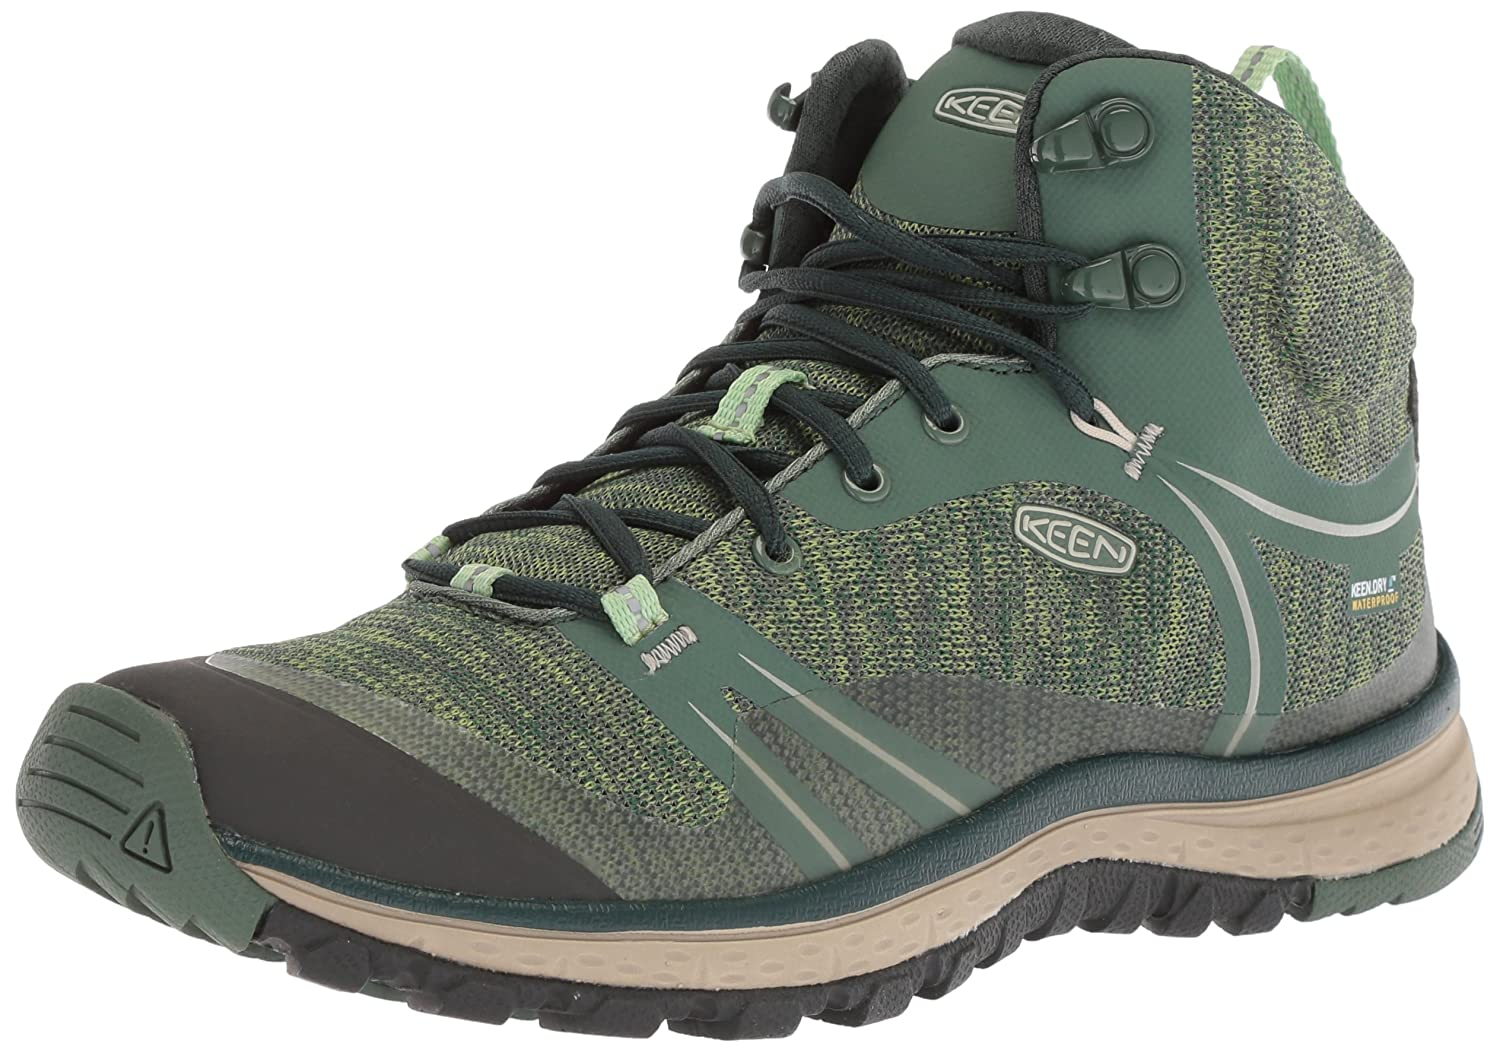 50b0e4c1e80 KEEN Women's Terradora Mid Wp High Rise Hiking Shoes: Amazon.co.uk ...